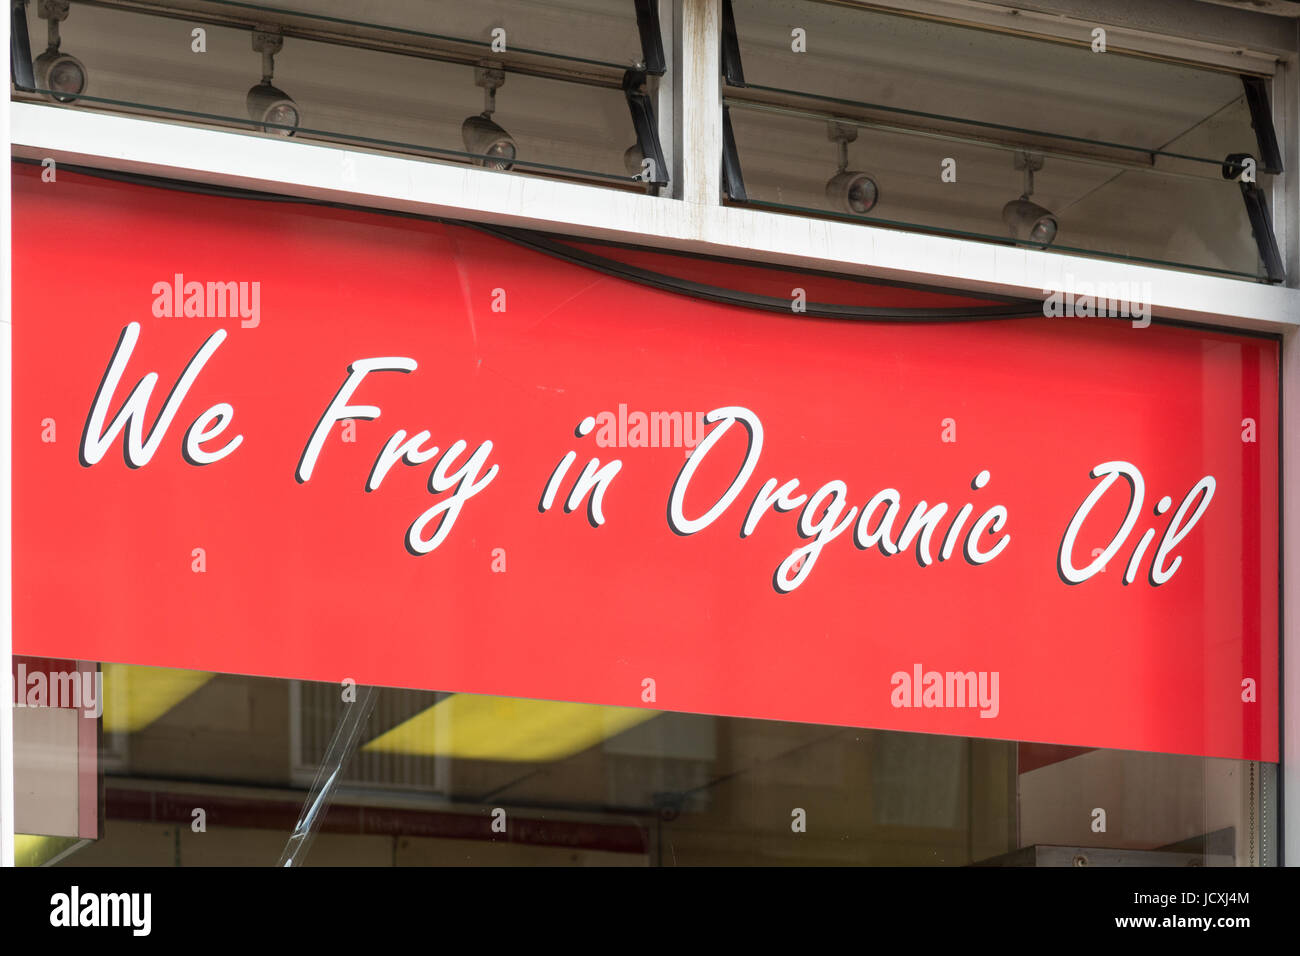 organic oil advertised in fish and chip shop window - The Grove fish and chip shop - Finnieston, Glasgow, Scotland, - Stock Image